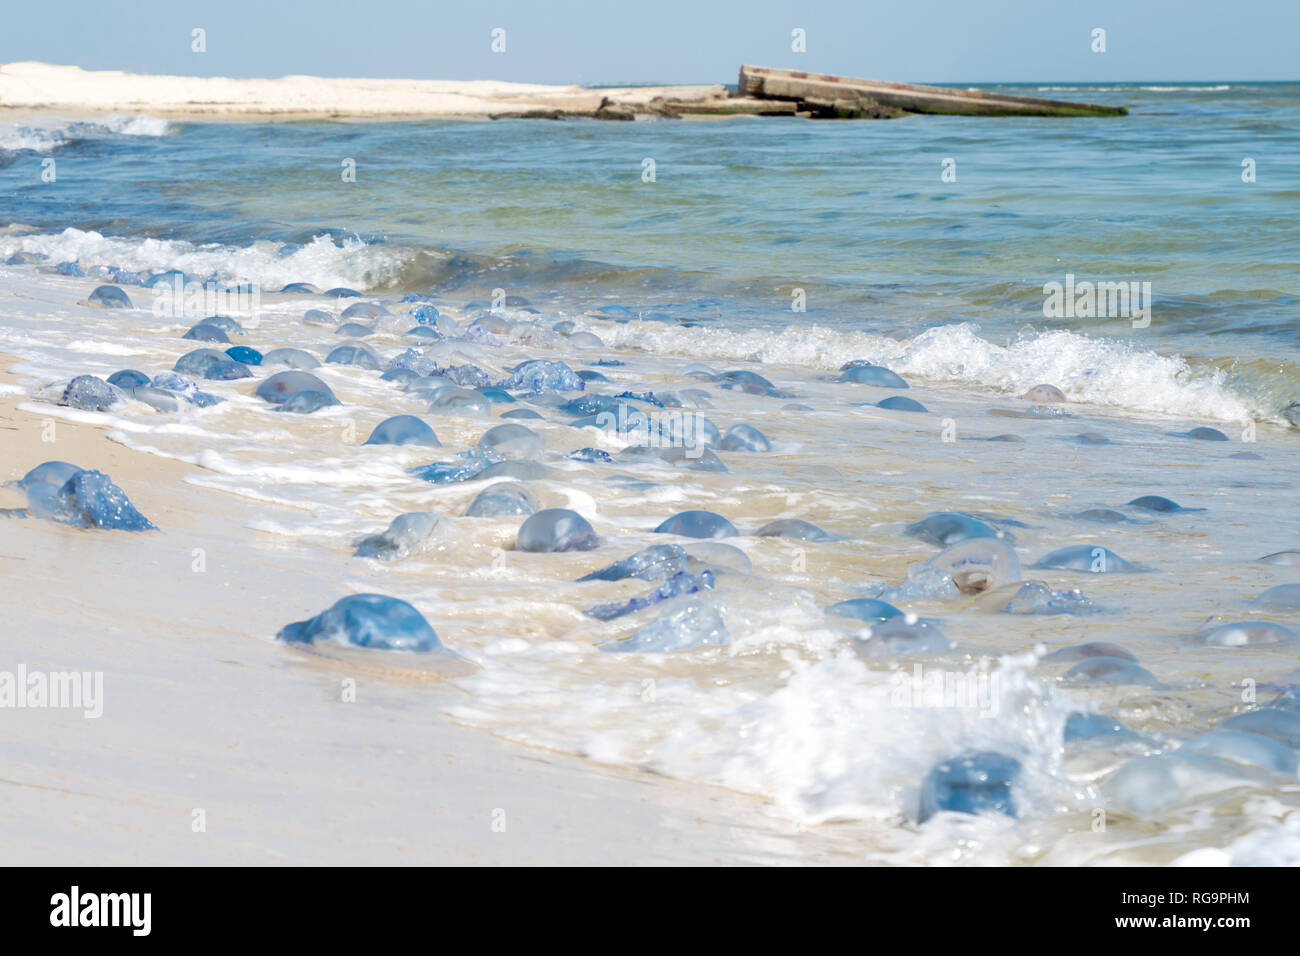 Ecological disaster and pollution of the world ocean. Millions dead jellyfish thrown to the seashore - Stock Image